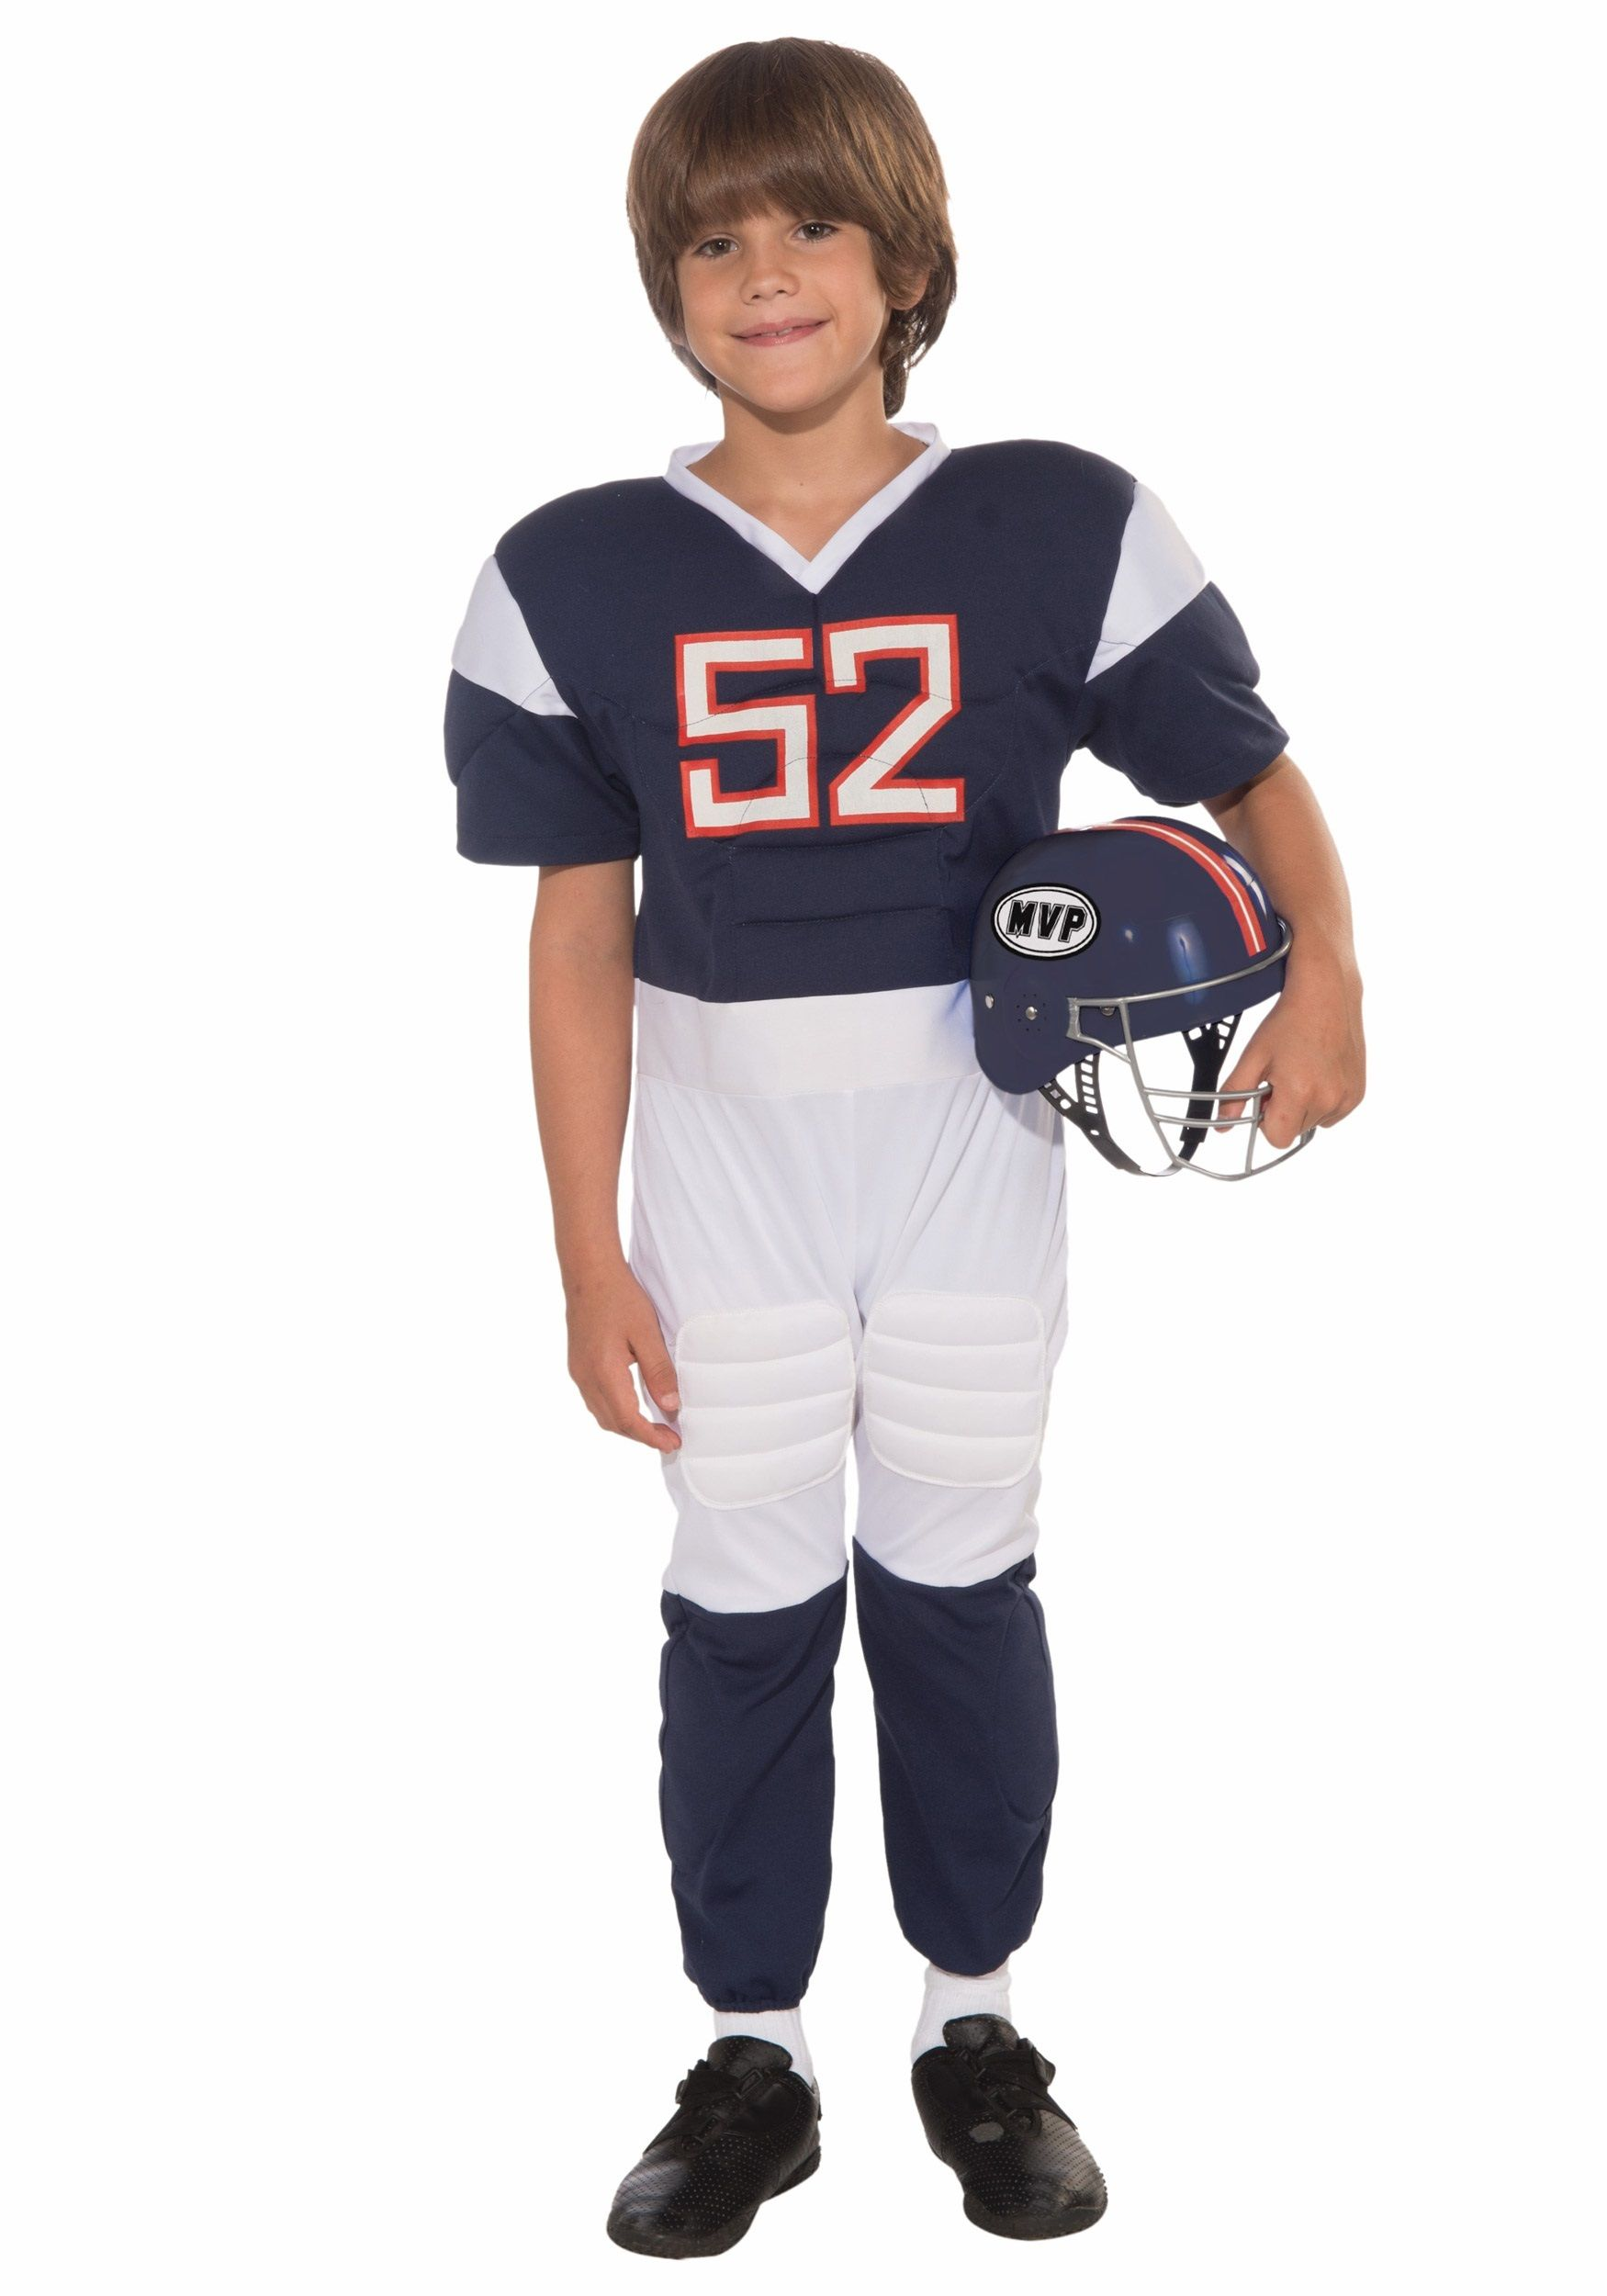 football uniforms halloween costumes url httpsafootballuniformssblogspotcom - Halloween Costume Football